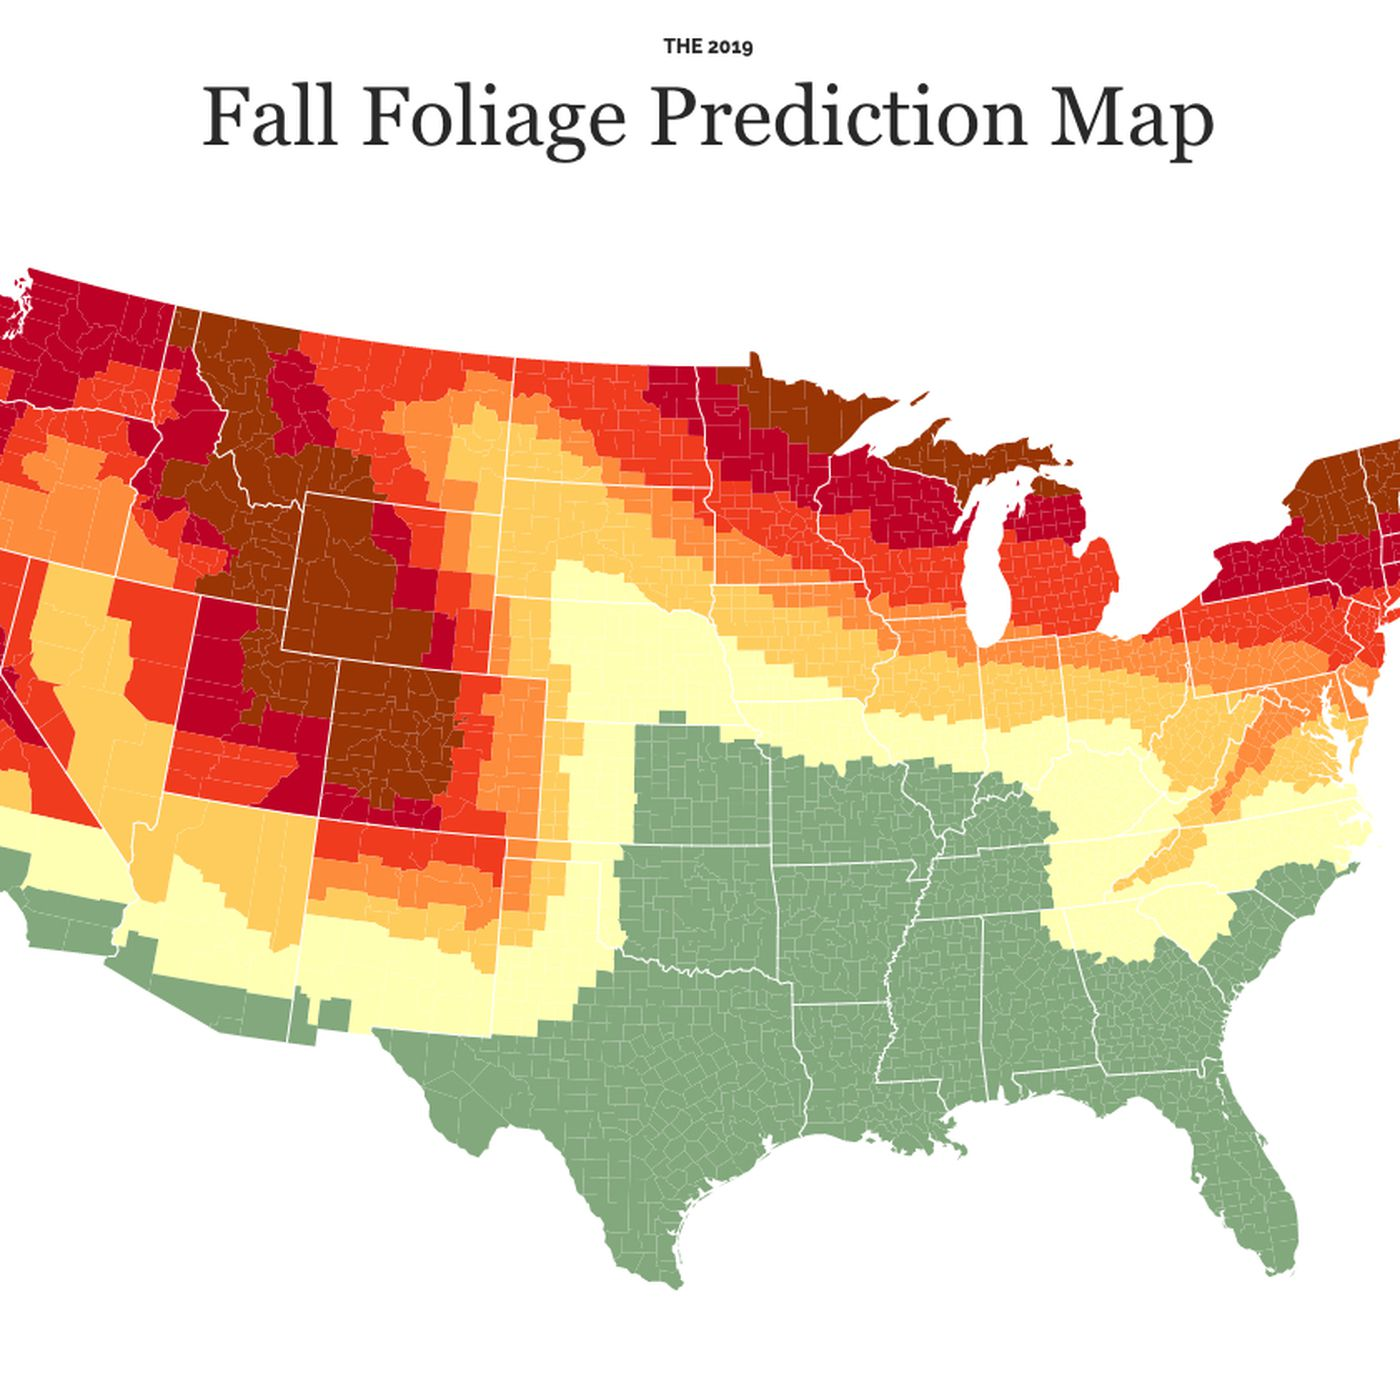 Fall Foliage Prediction Map 2020.Fall Colors 2019 Map When And Where Autumn Foliage Will